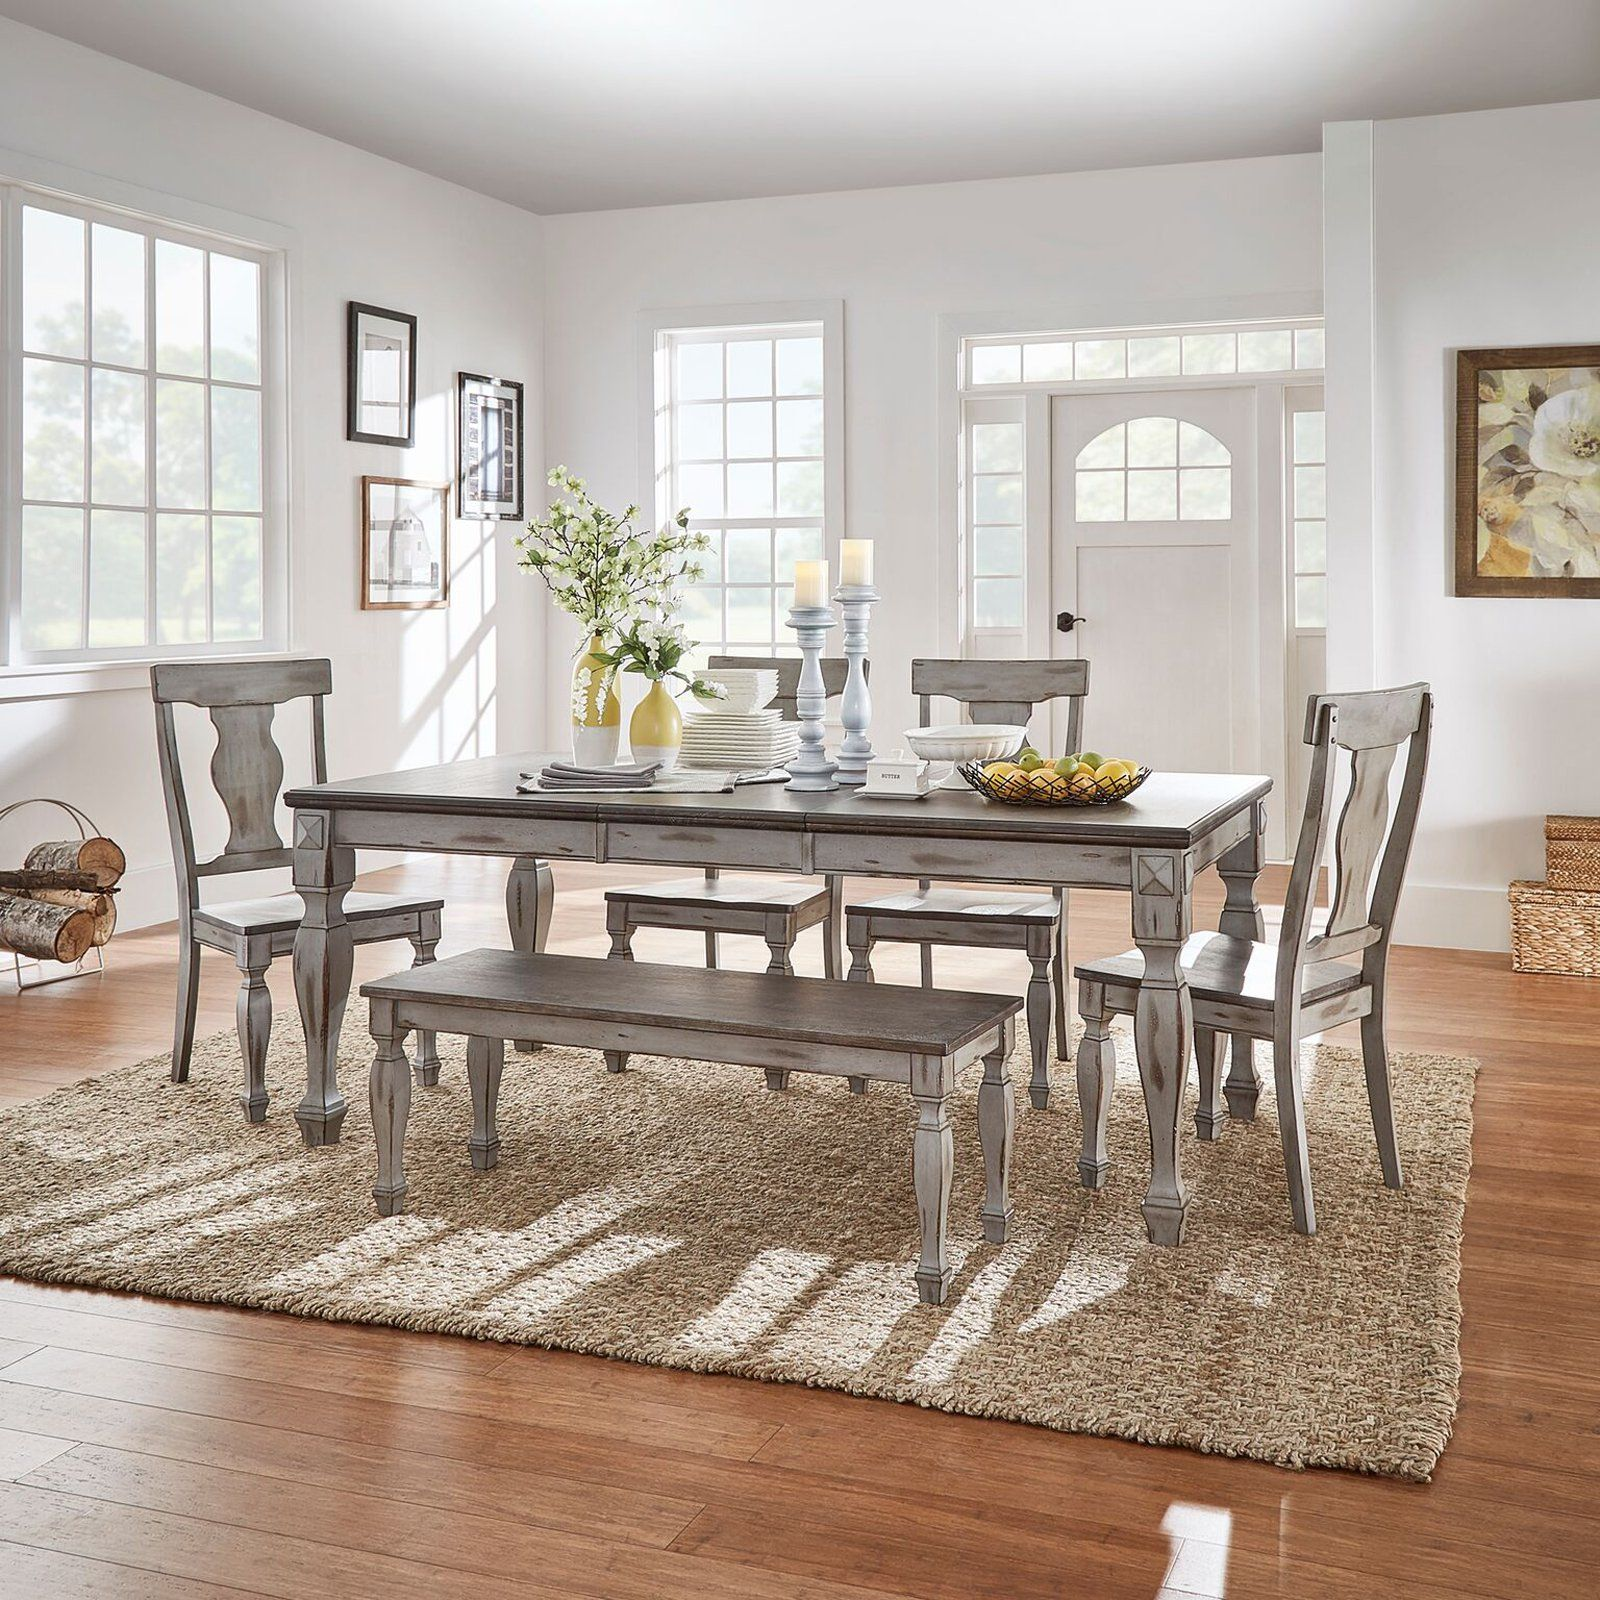 Weston Home Two Tone 6 Piece Extension Dining Set Weston Home